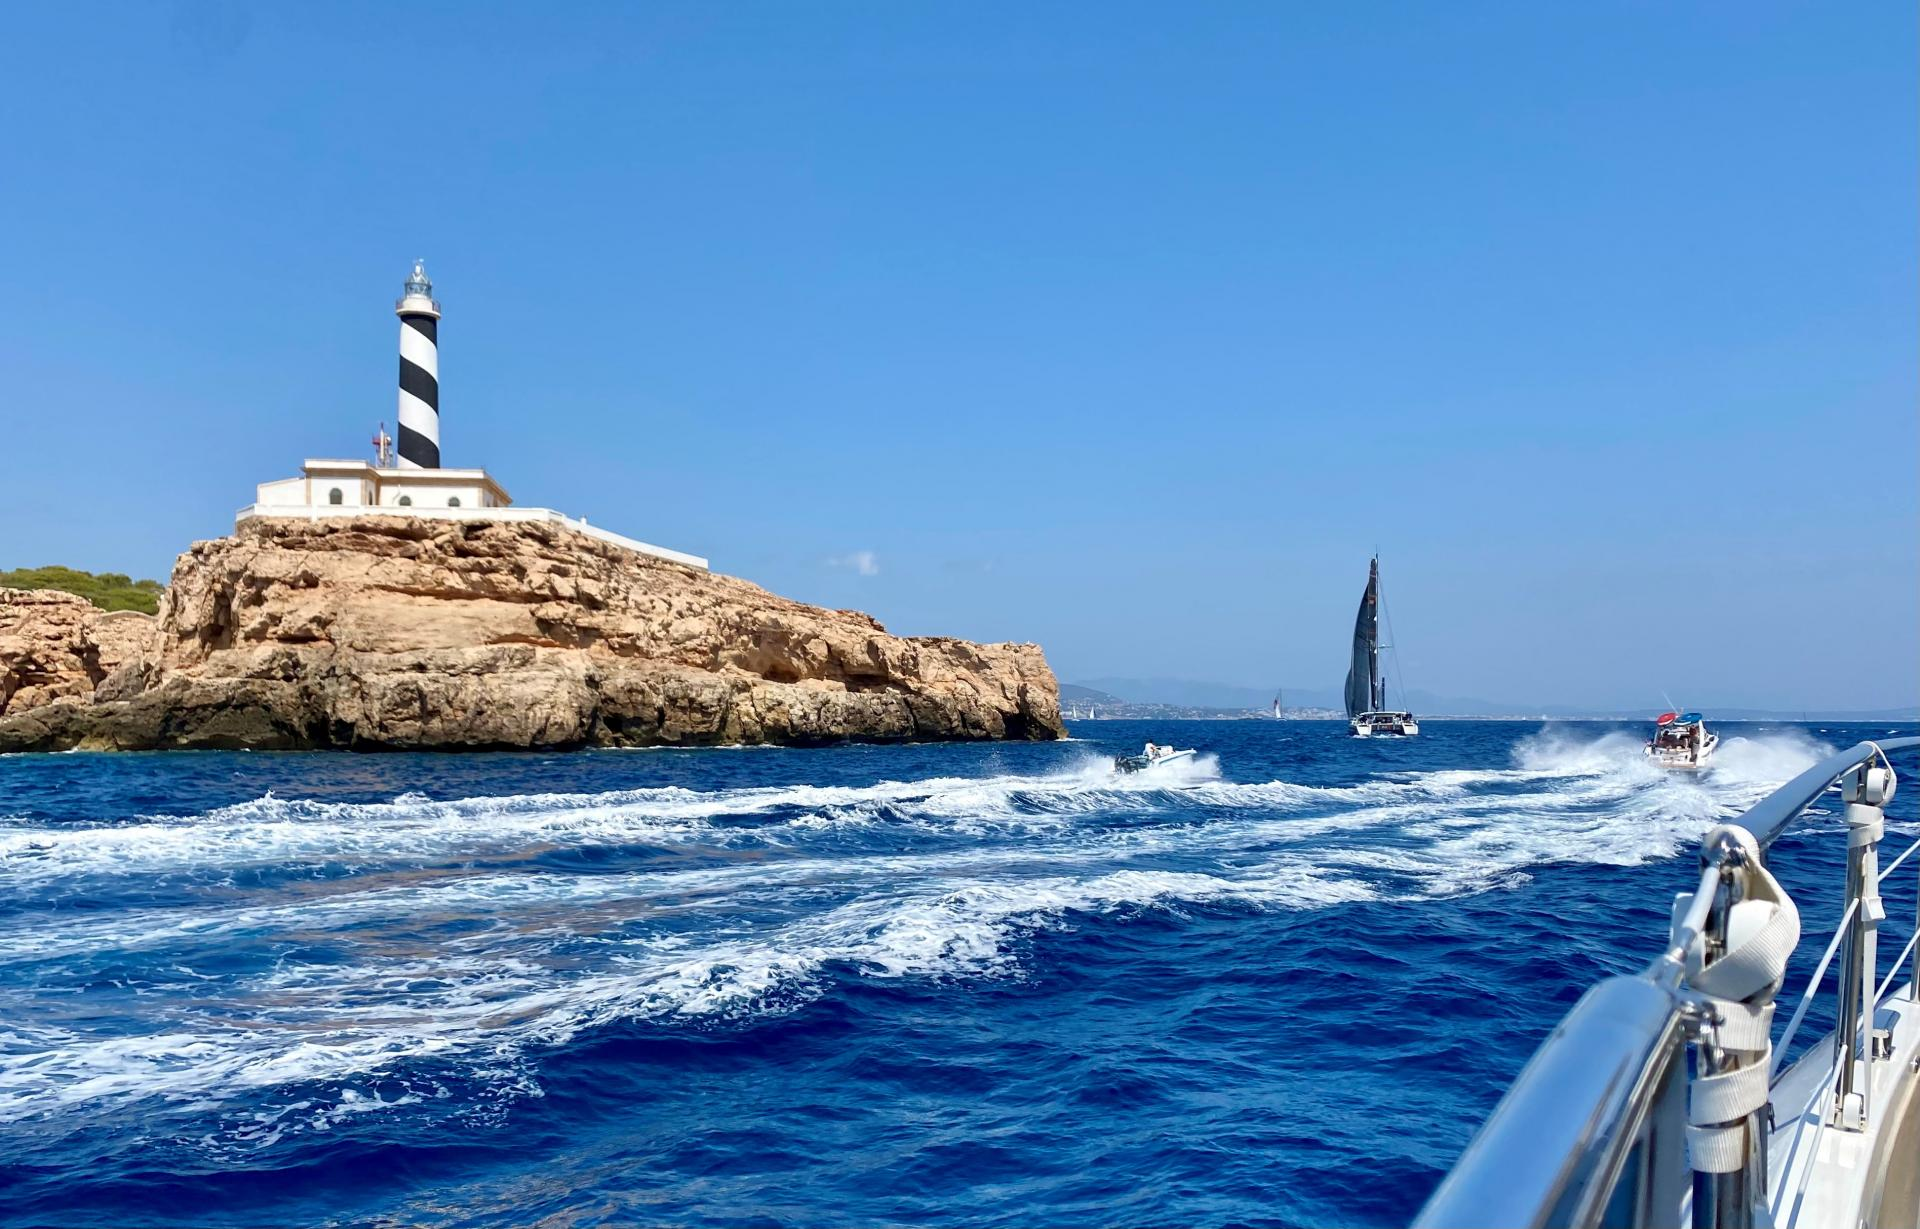 Passing the Cala Figuera lighthouse